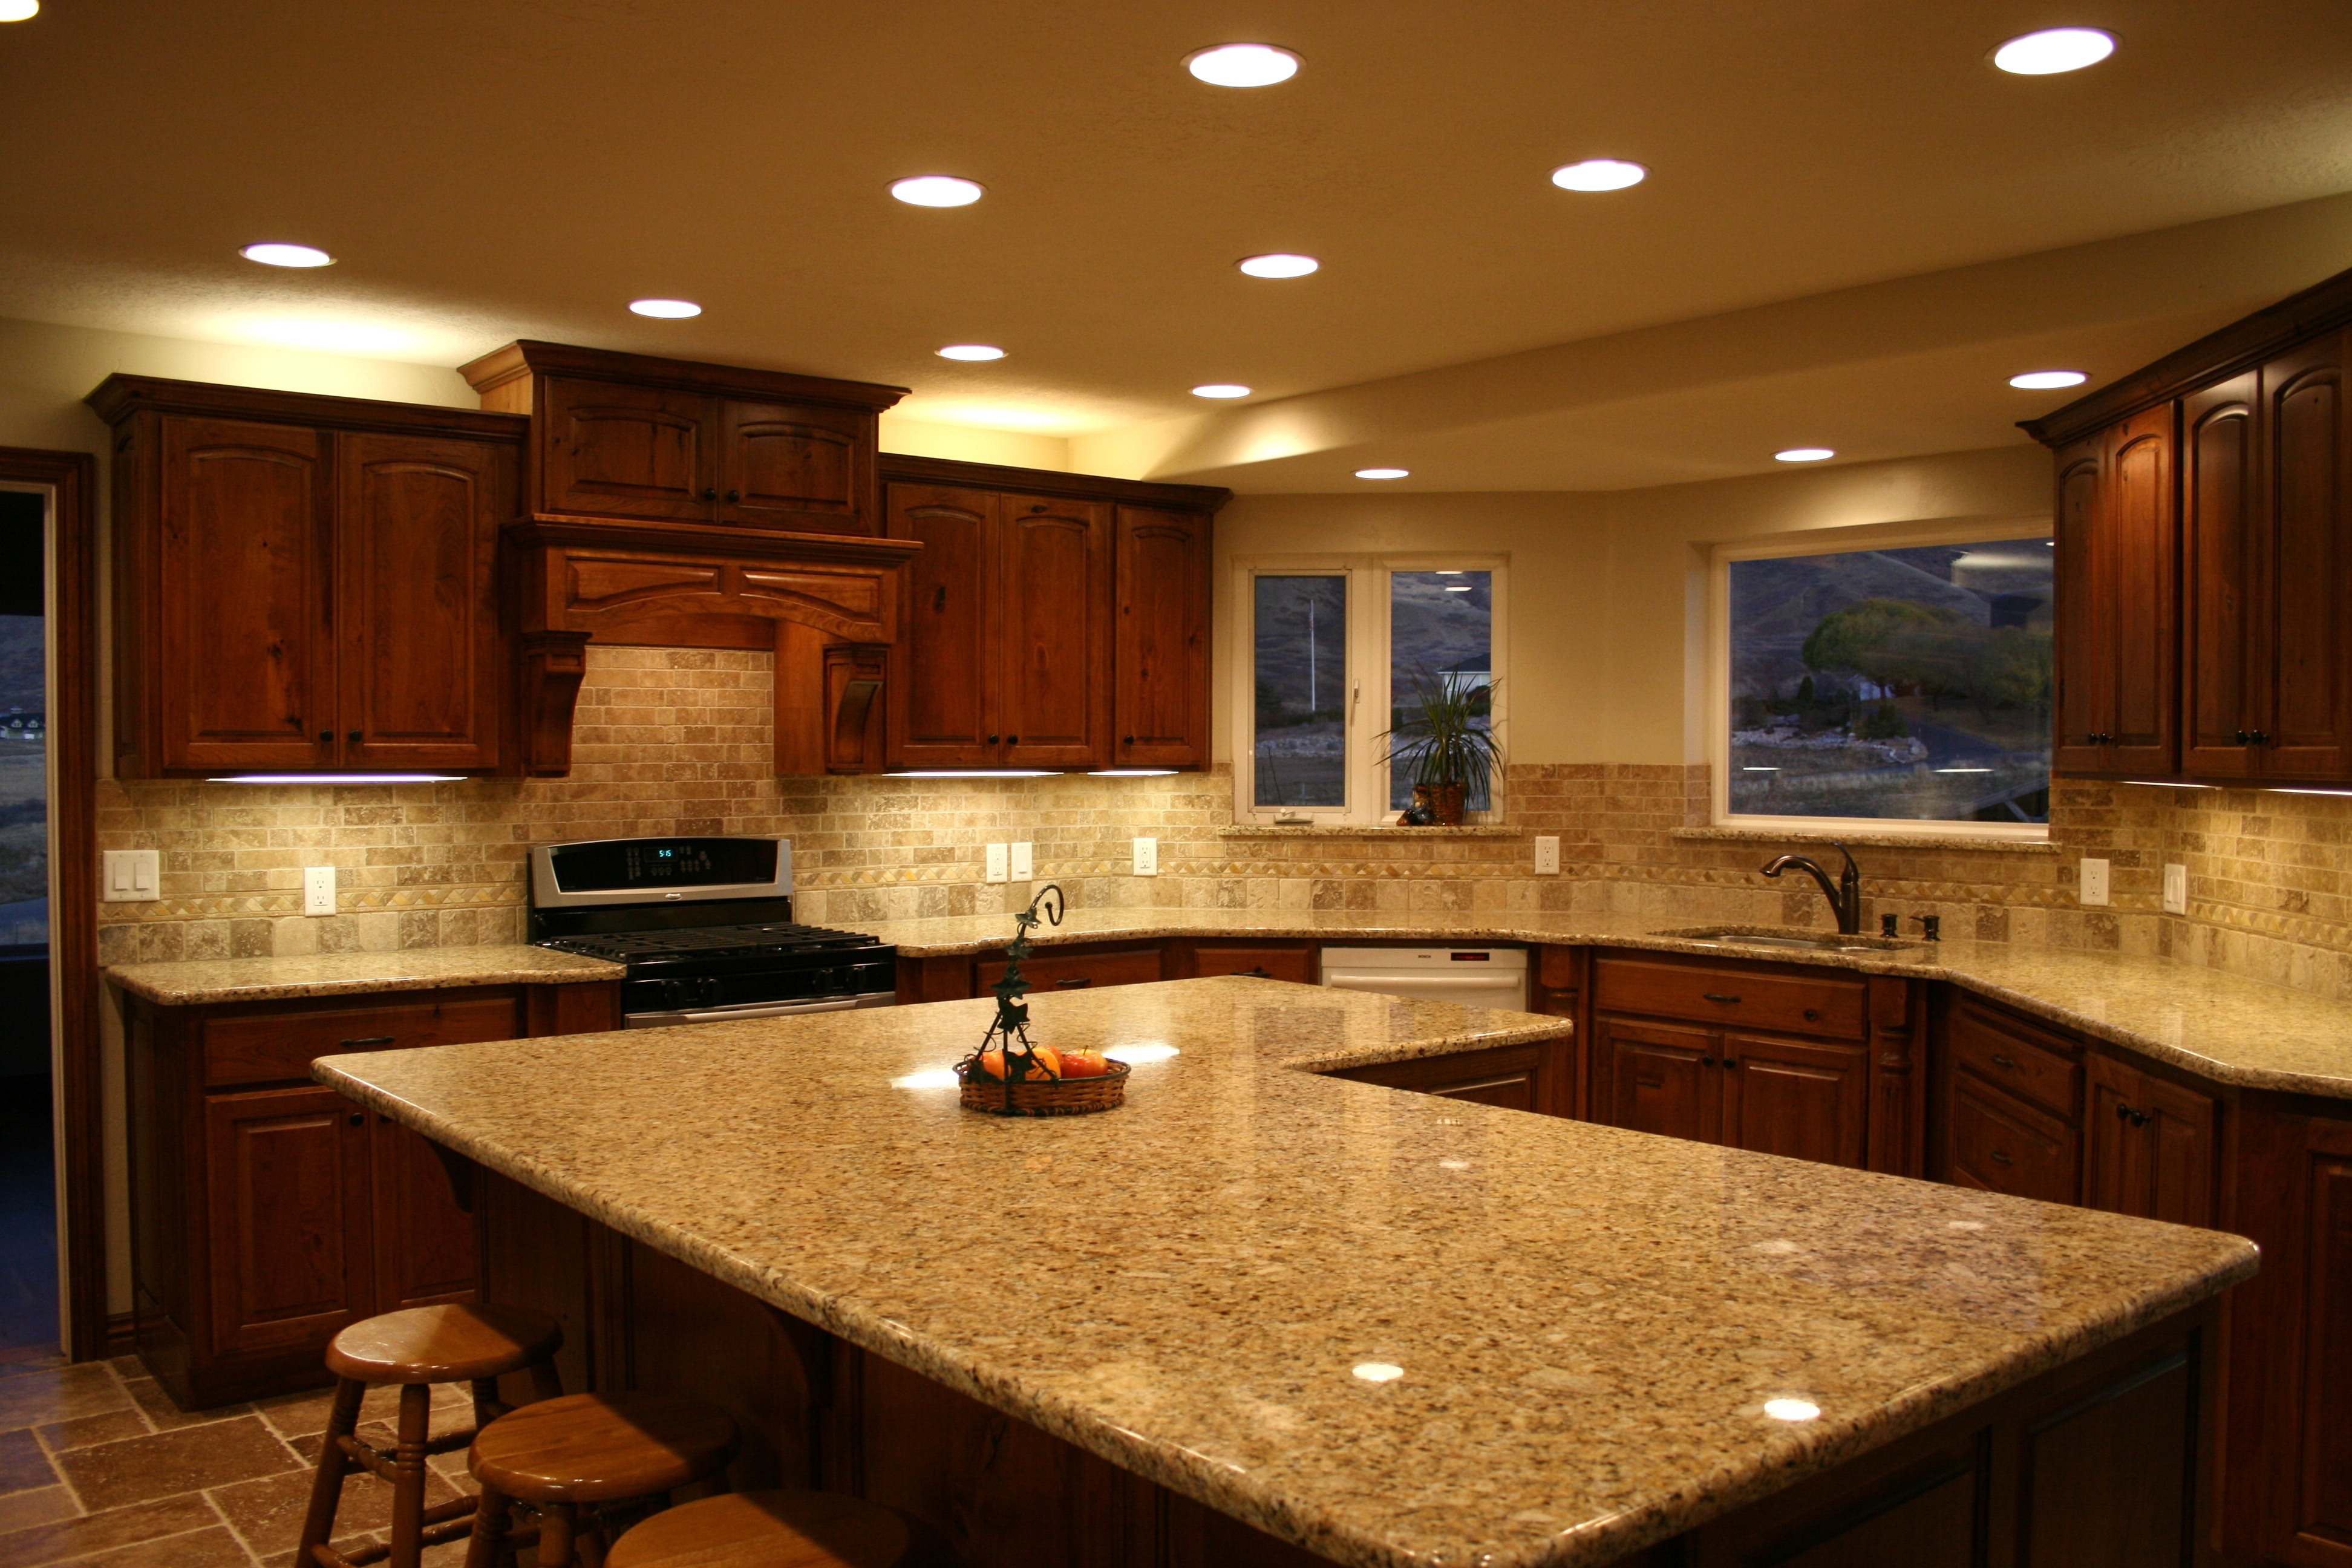 Kitchen Islands With Granite Tops For People Who Want Their Apartments Look Glamorous And Expensive Modern Kitchen Furniture Photos Ideas Reviews